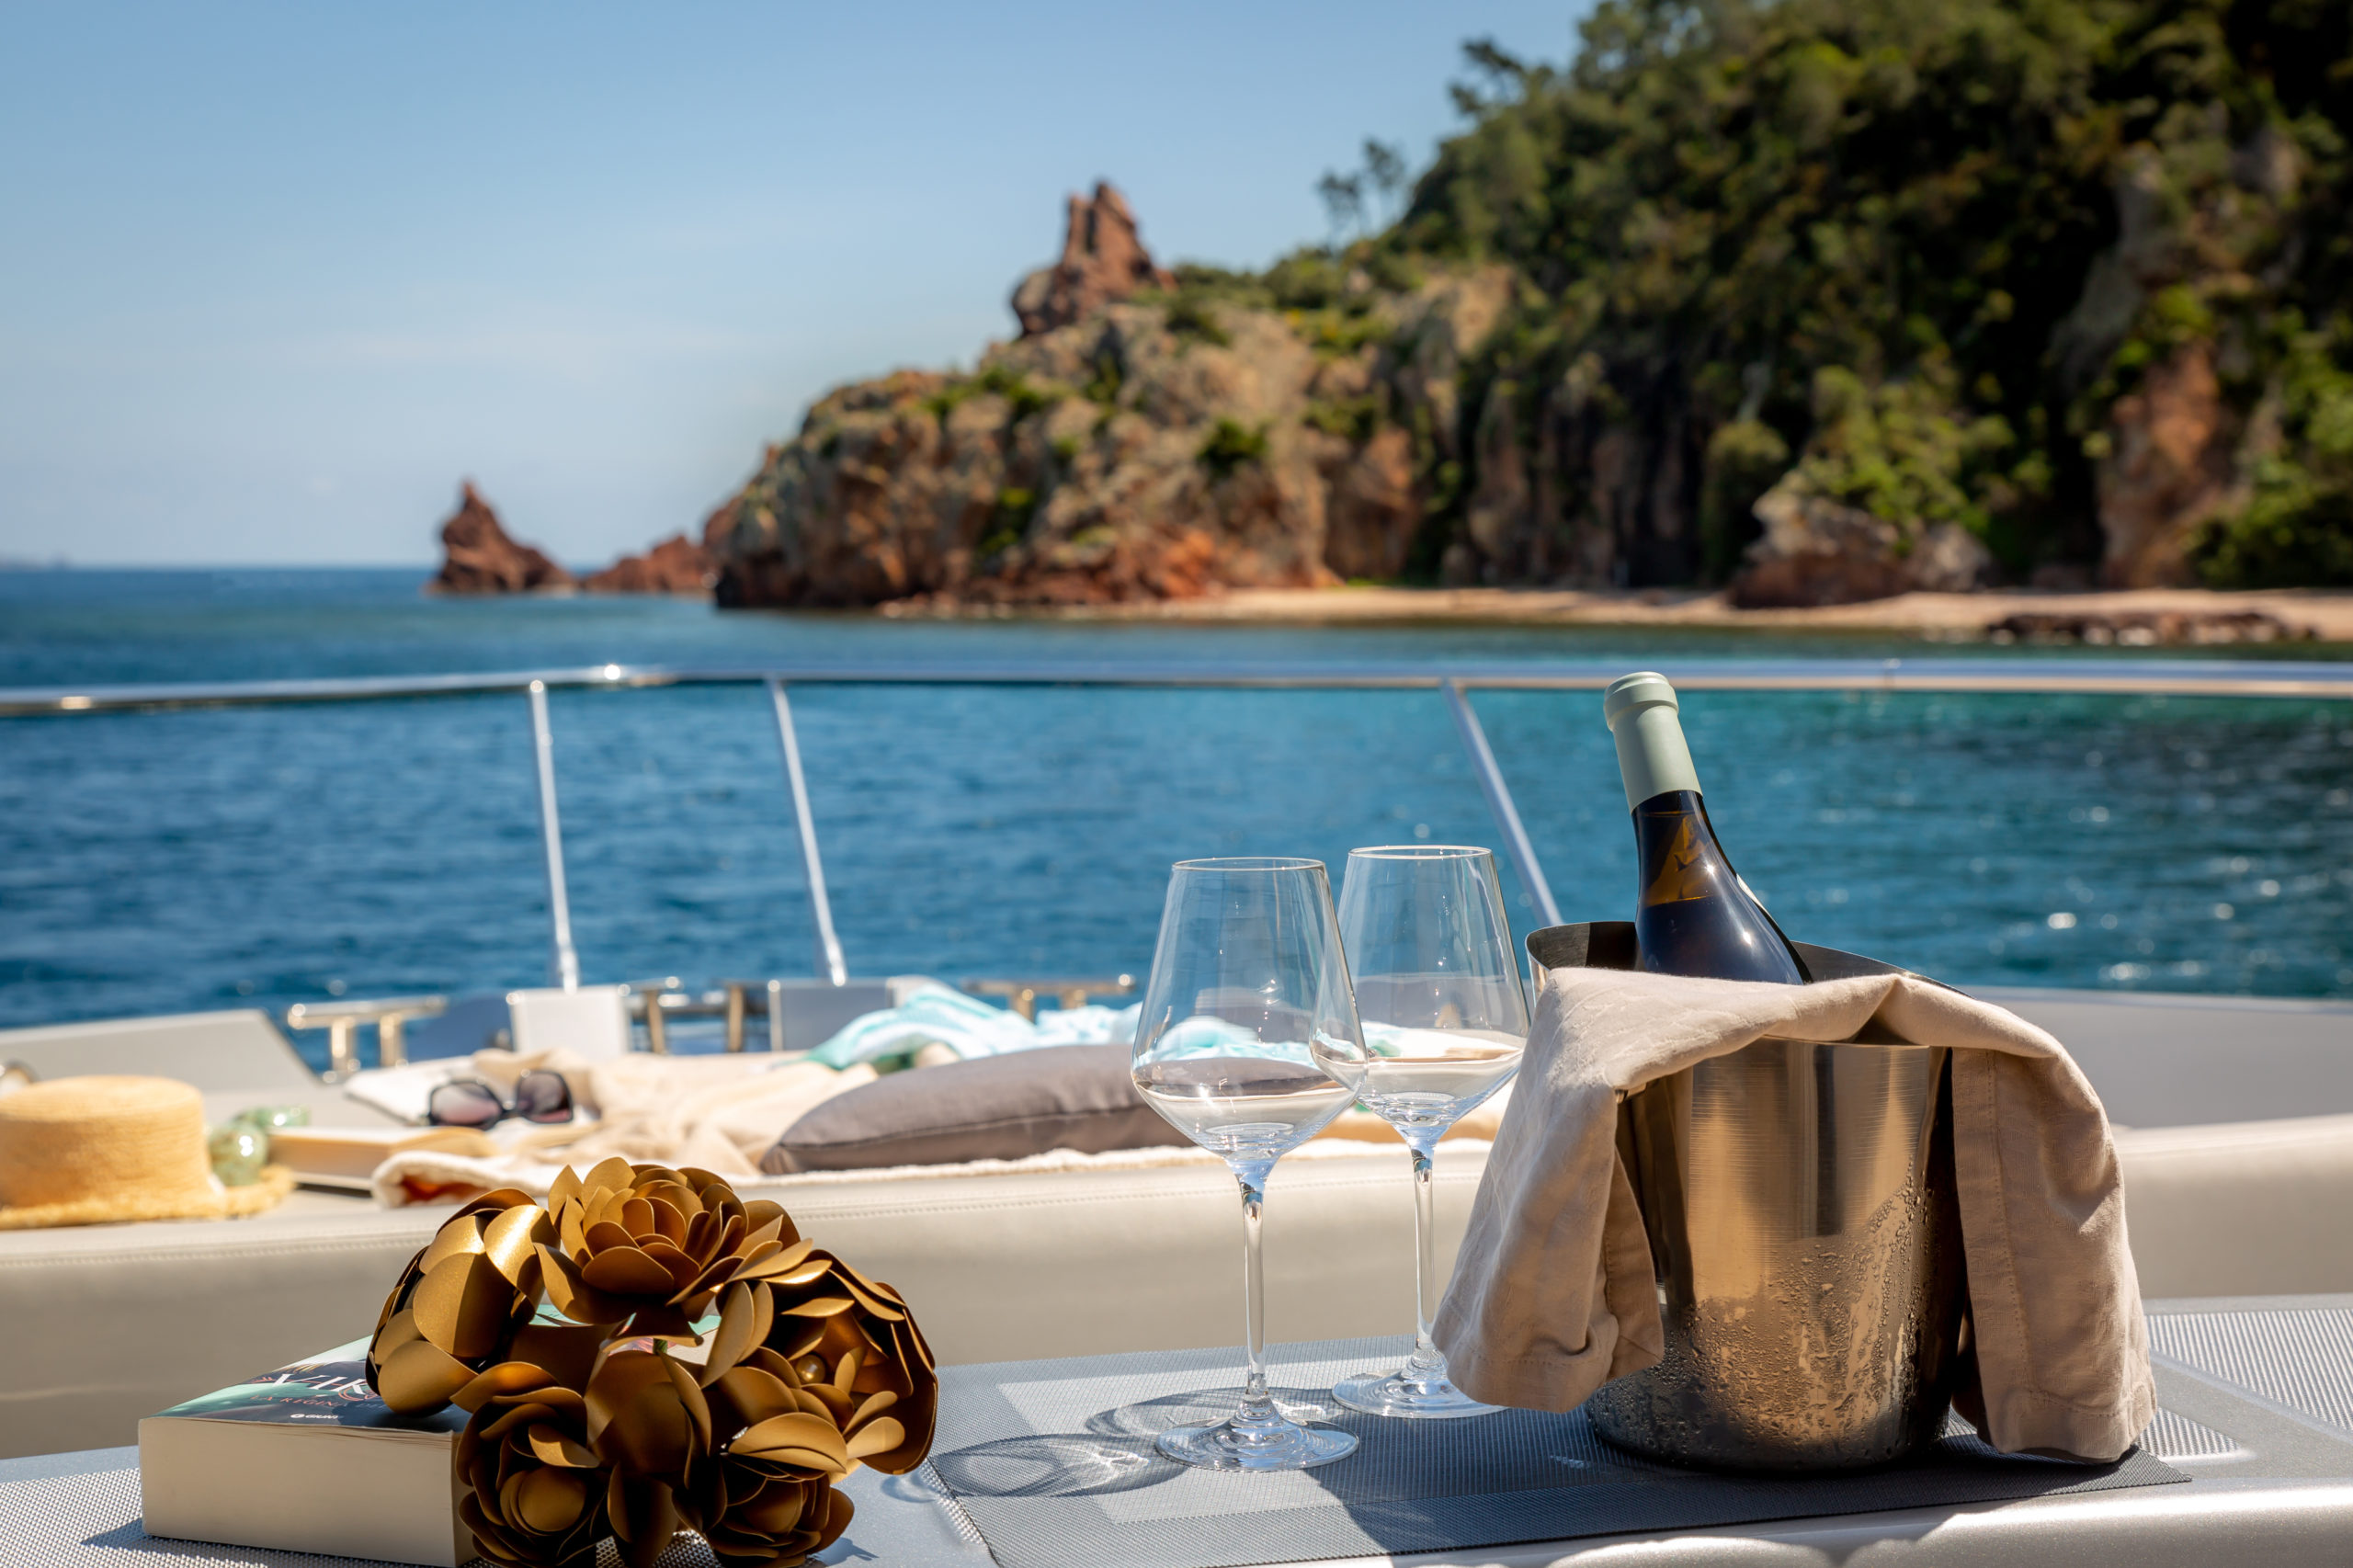 5 tips : How to organize the best holidays aboard a superyacht